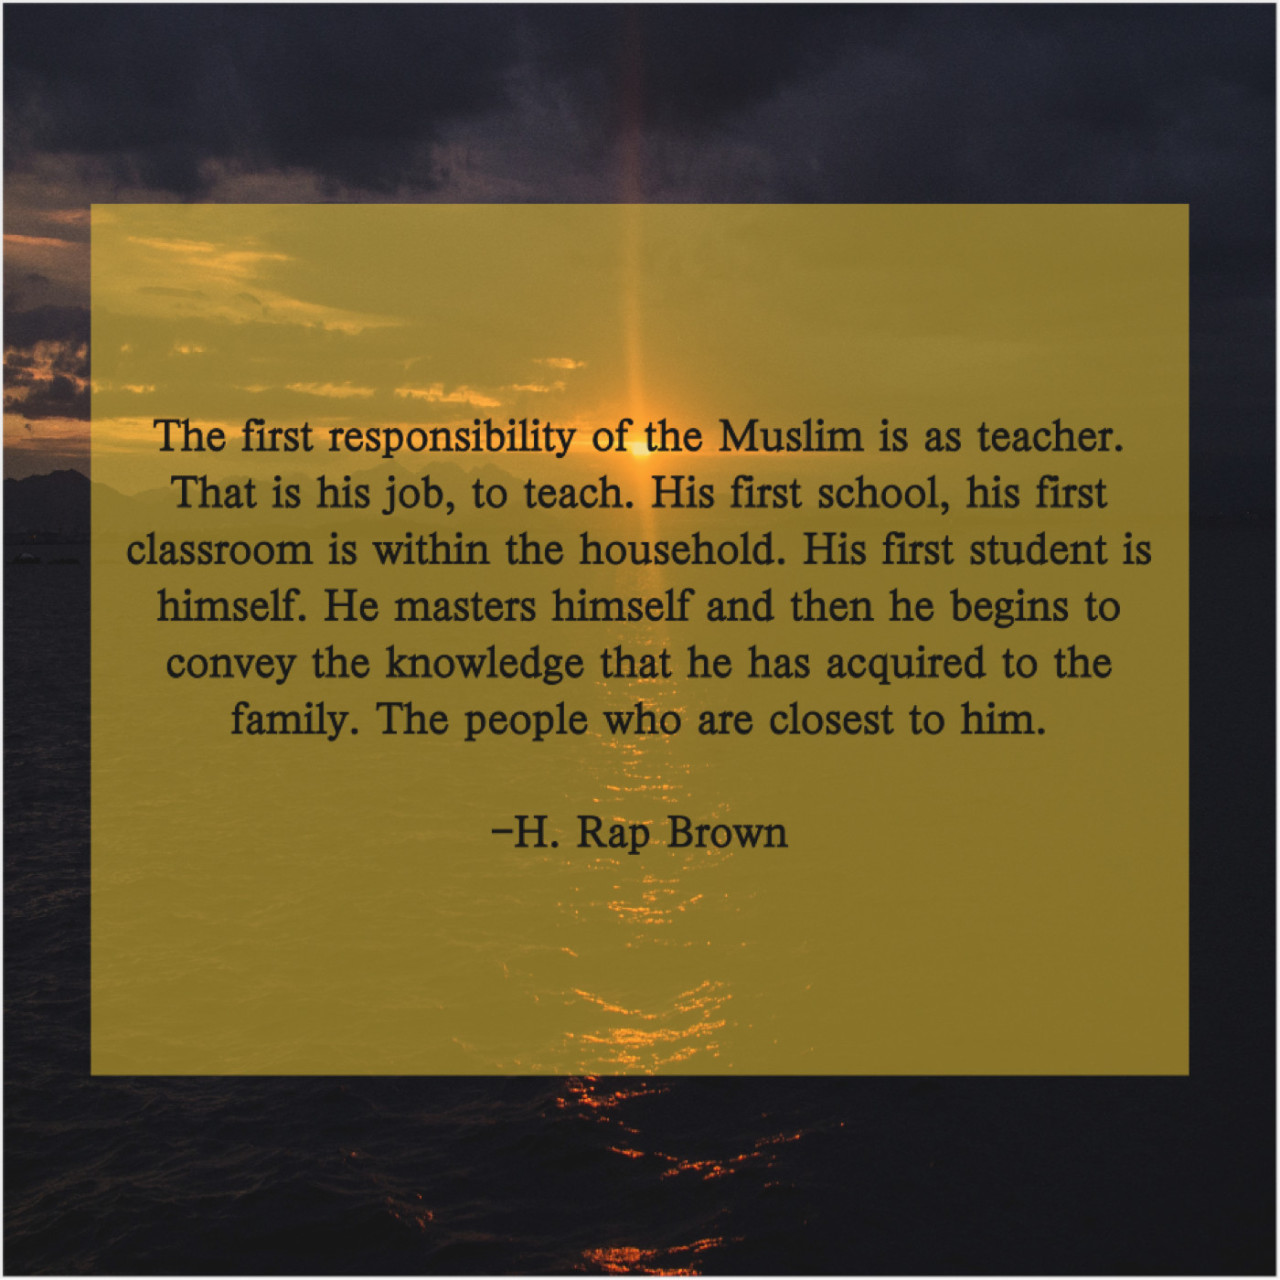 H. Rap Brown – The first responsibility of the… https://ift.tt/2RaH4QO ✪ Get More FANTASTIC Quotes—the Image Will Take You There! 😉 #lifequotes#inspiration#quoteoftheday#quotestoliveby#motivation#positivethinking#quotes